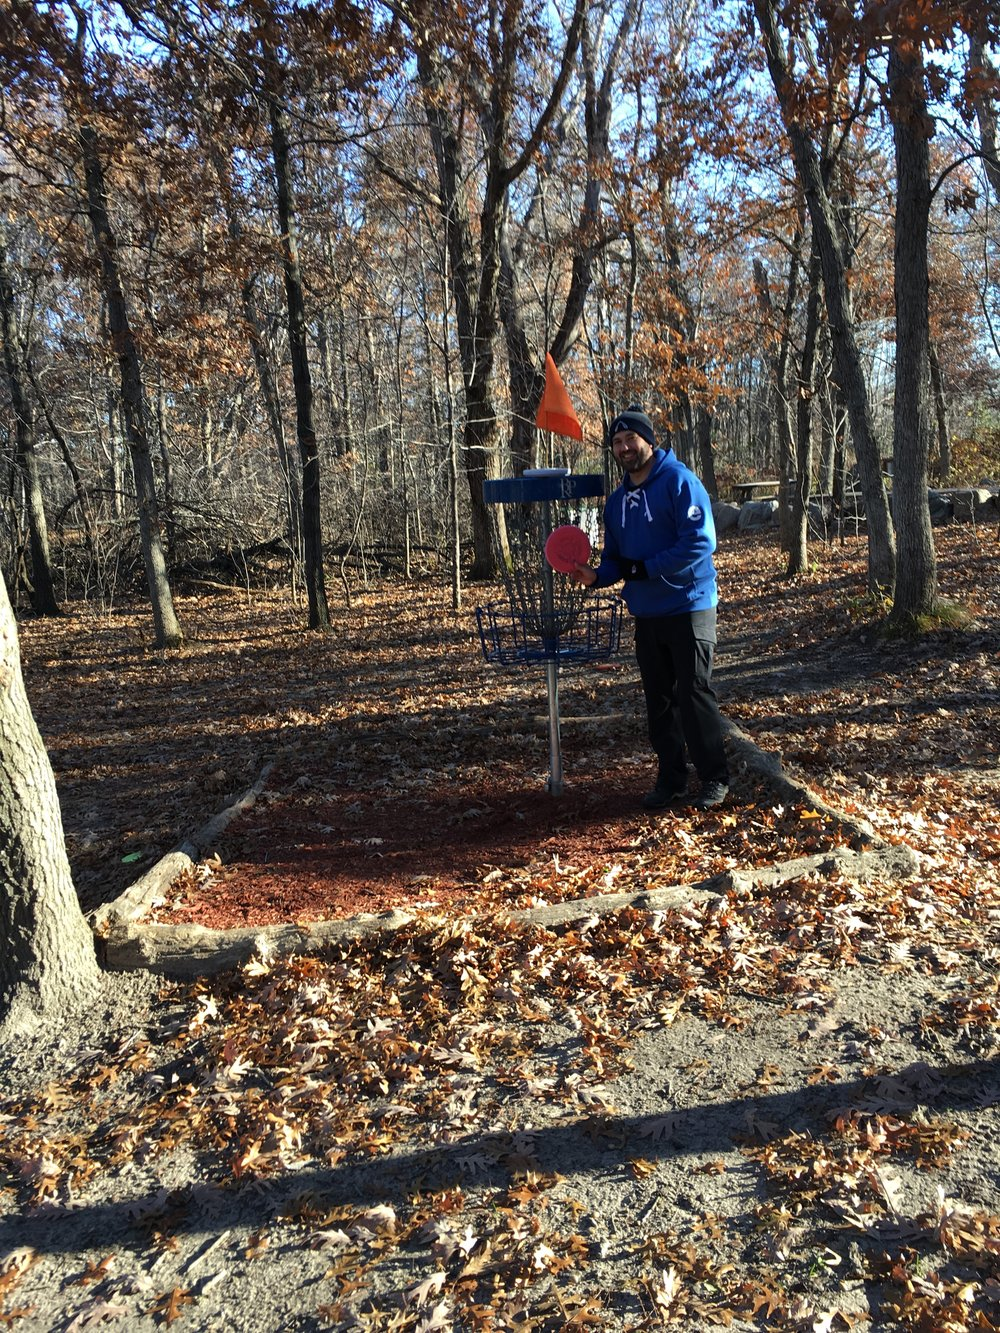 Aaron Palm with an Axiom Envy ace on hole 6 at Blue Ribbon Pines in East Bethel, MN.